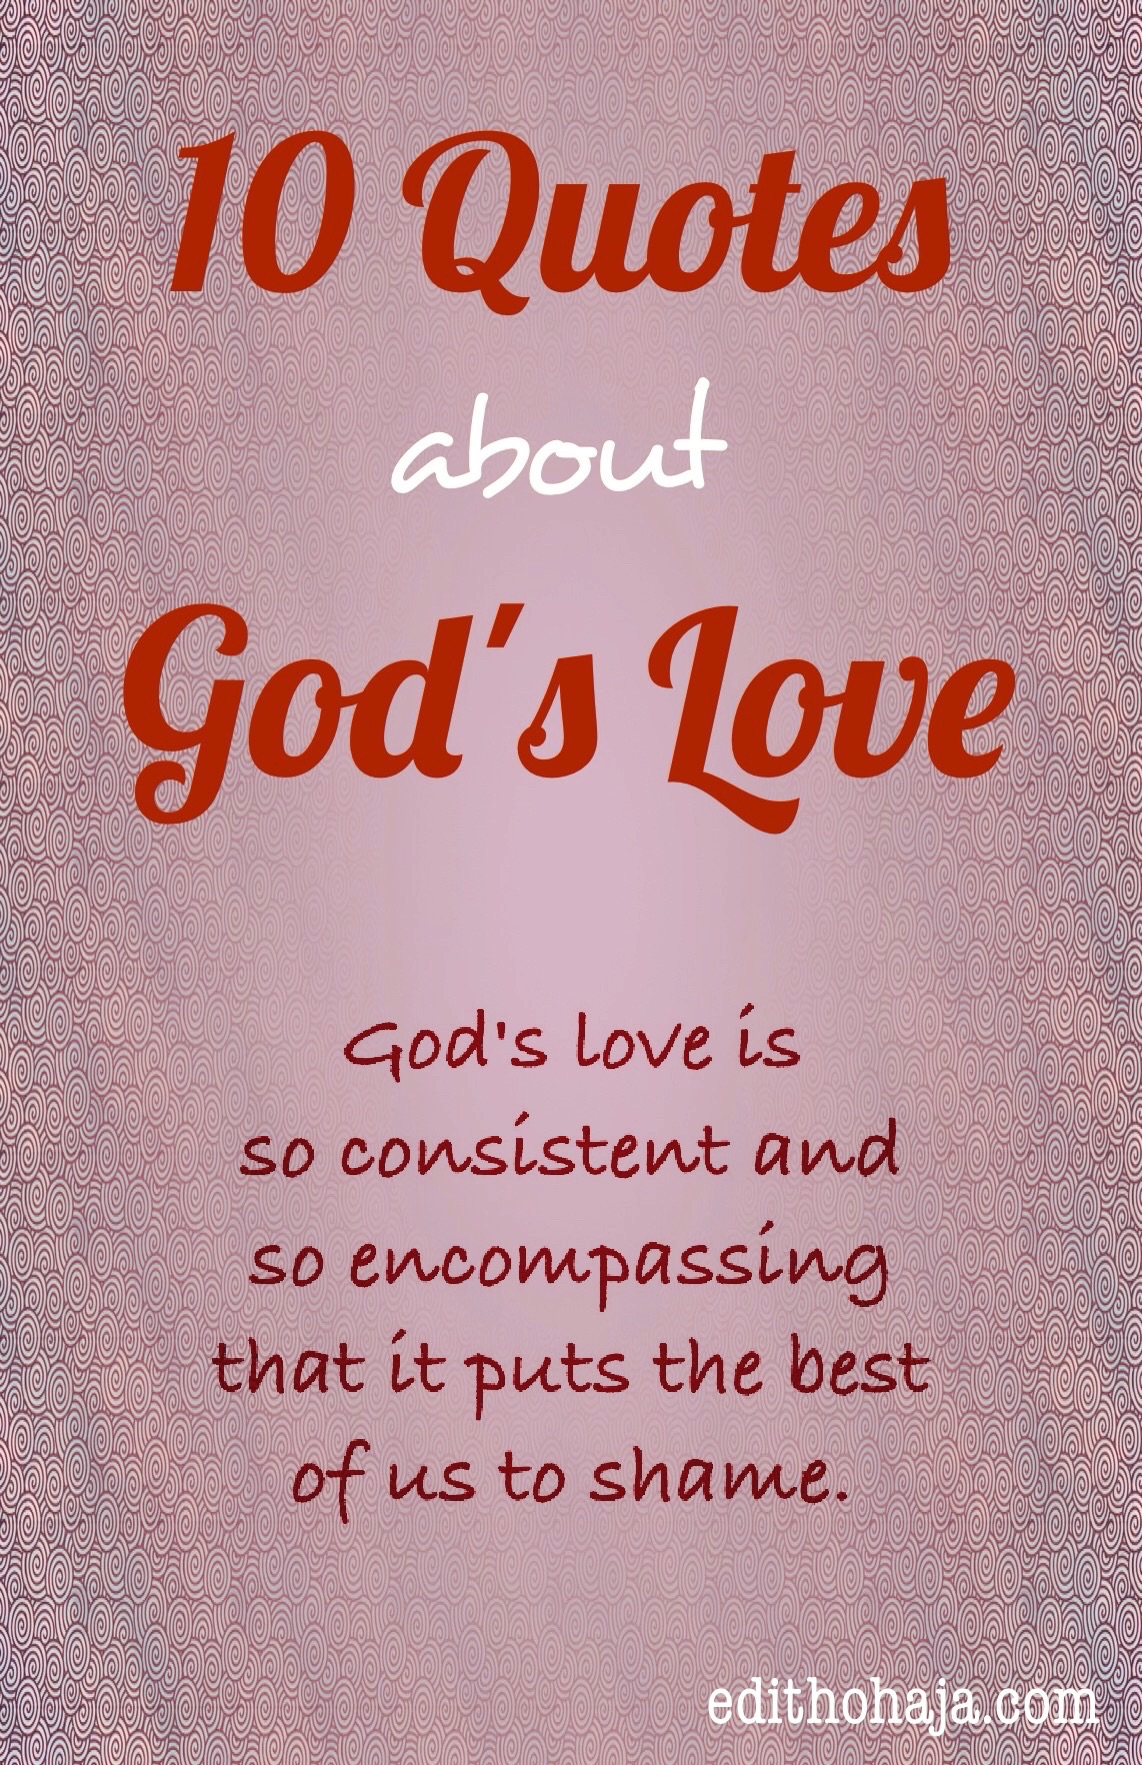 You can also check out these popular posts about God and His love for us